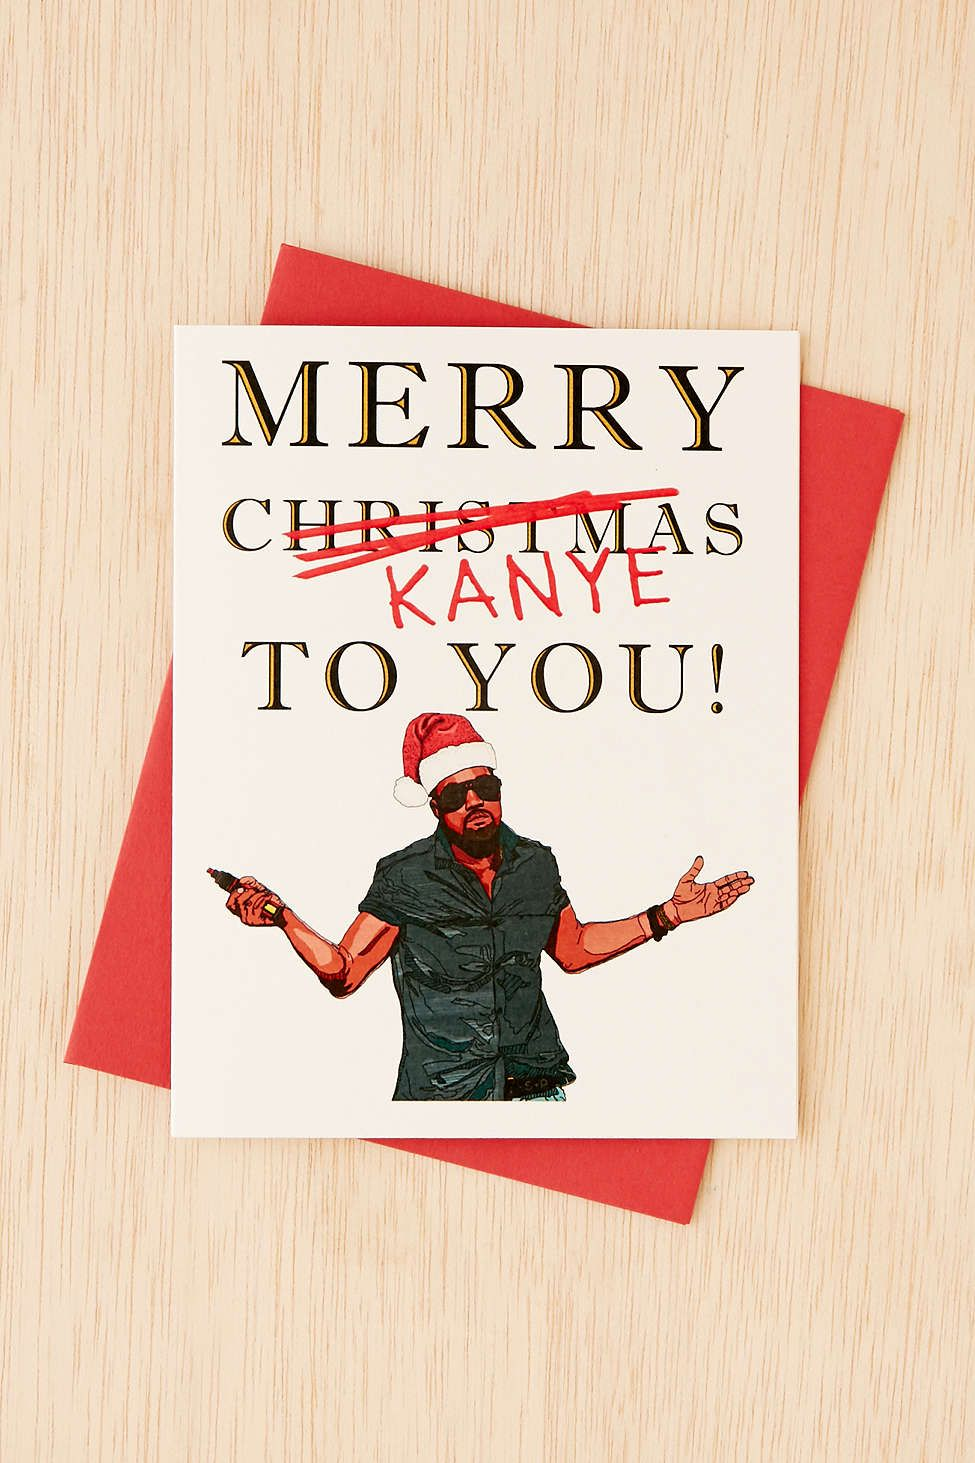 15 witty holiday cards that wont make you cringe merry and holidays funny holiday cards that wont make you cringe stylecaster m4hsunfo Choice Image